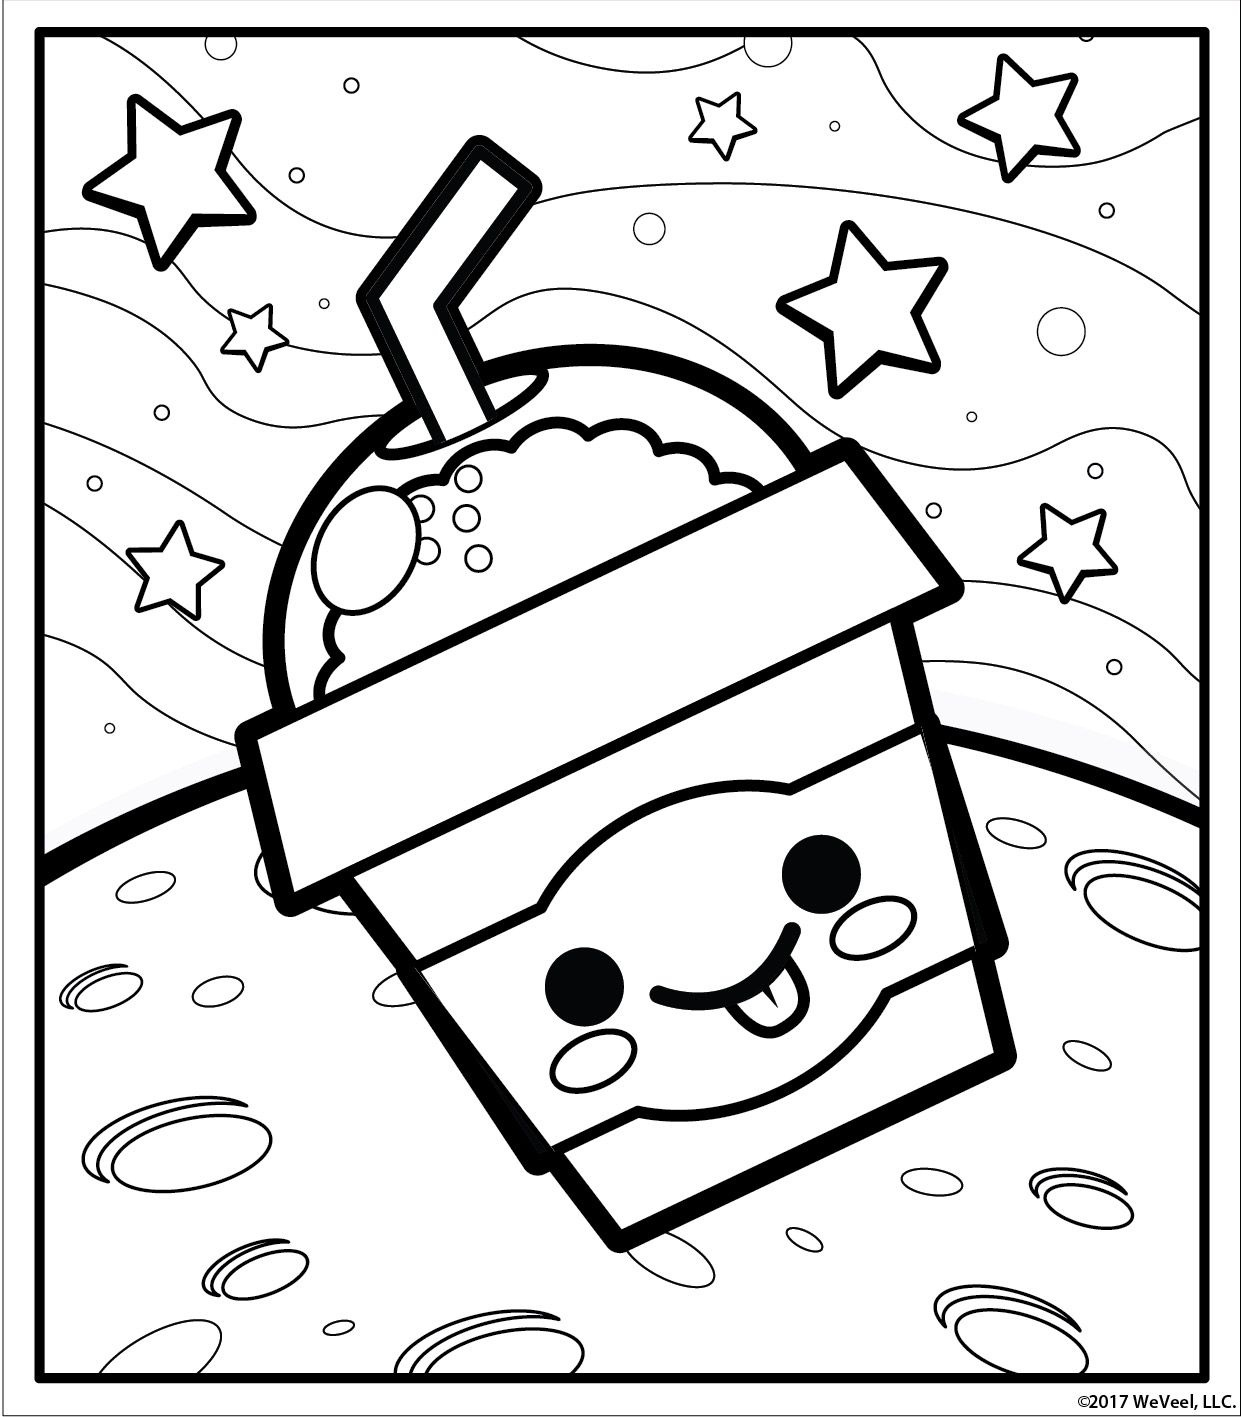 Cute Girl Coloring Pages To Download And Print For Free. Spring Time - Free Printable Coloring Pages For Teens